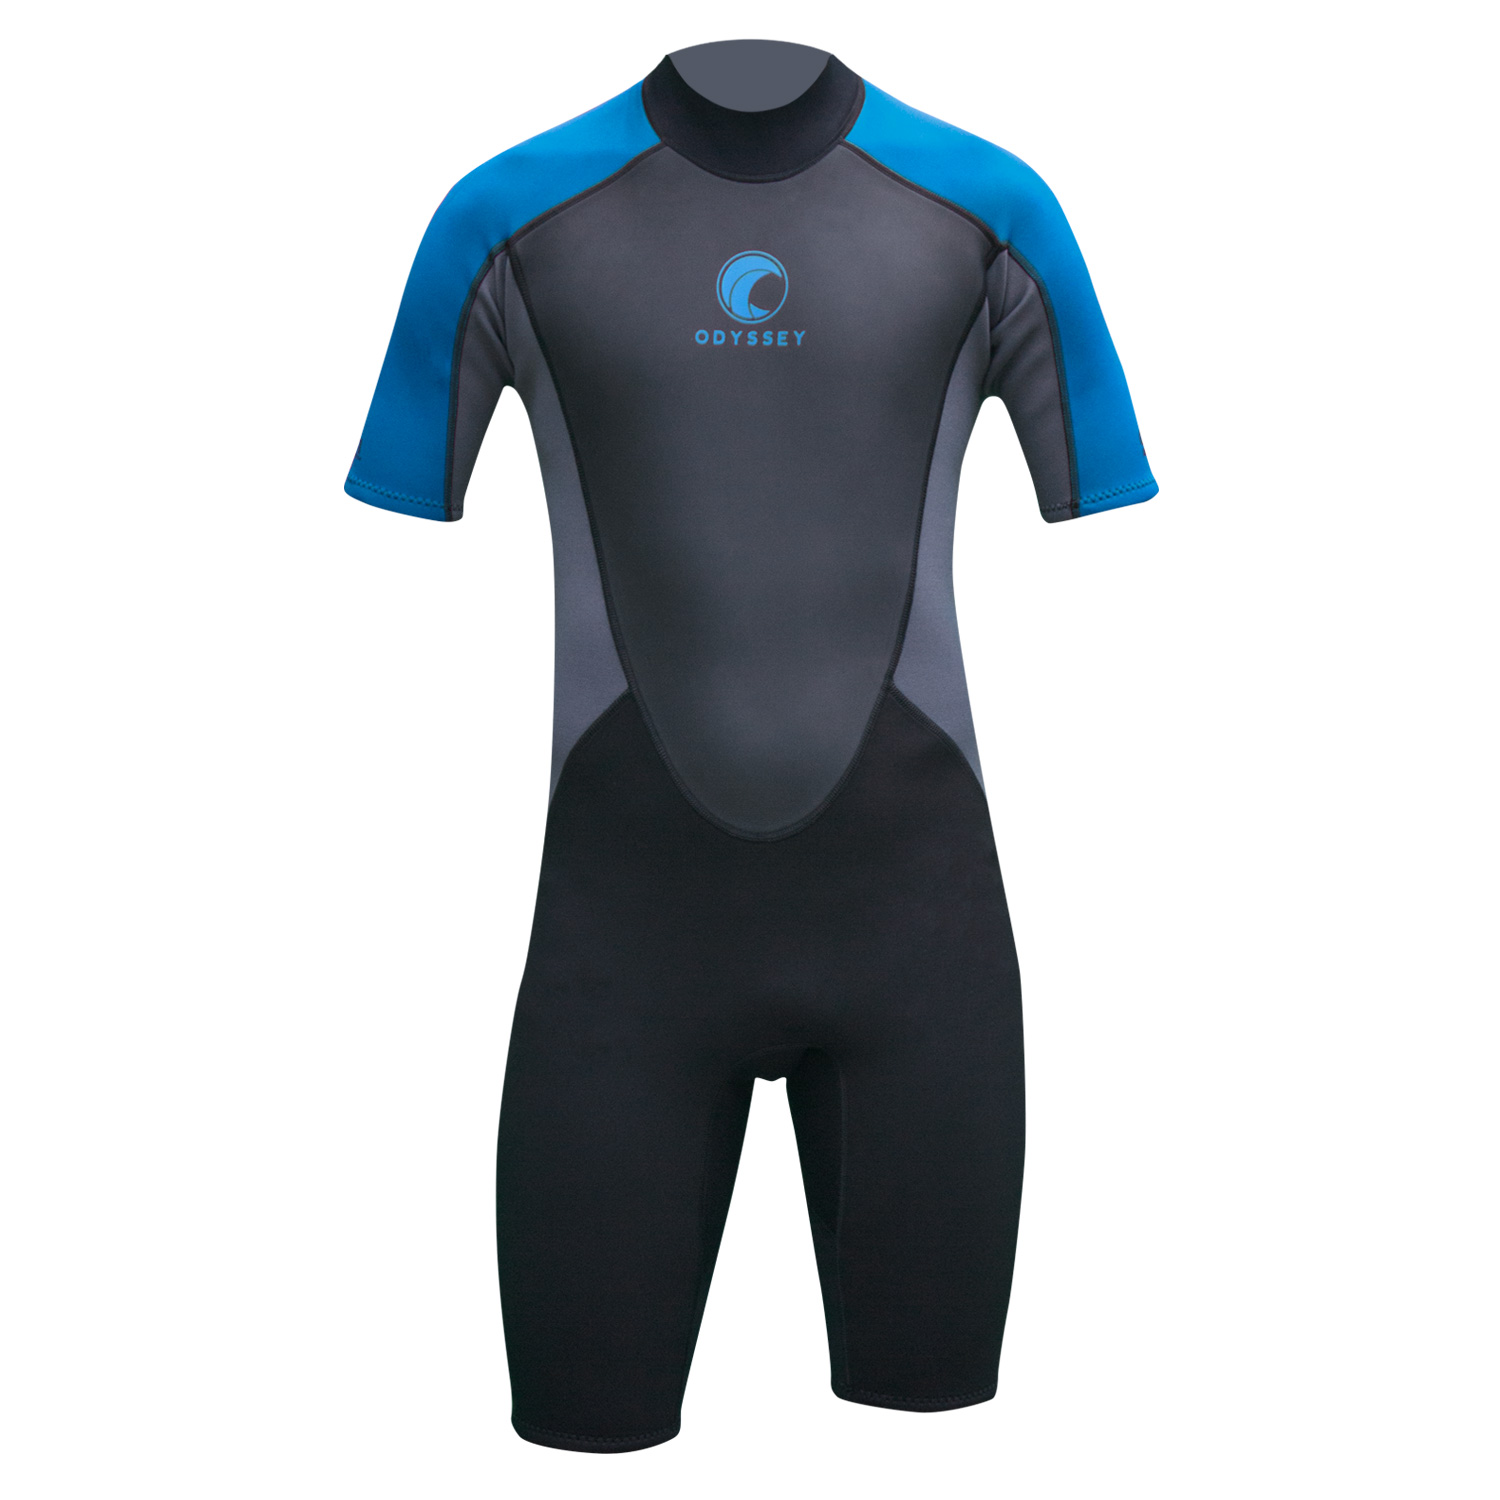 Odyssey-Core-3-2mm-Mens-Shorty-Wetsuit-Surf-Swim-Kayak-Shortie-Wet-Suit-S-XXL thumbnail 11